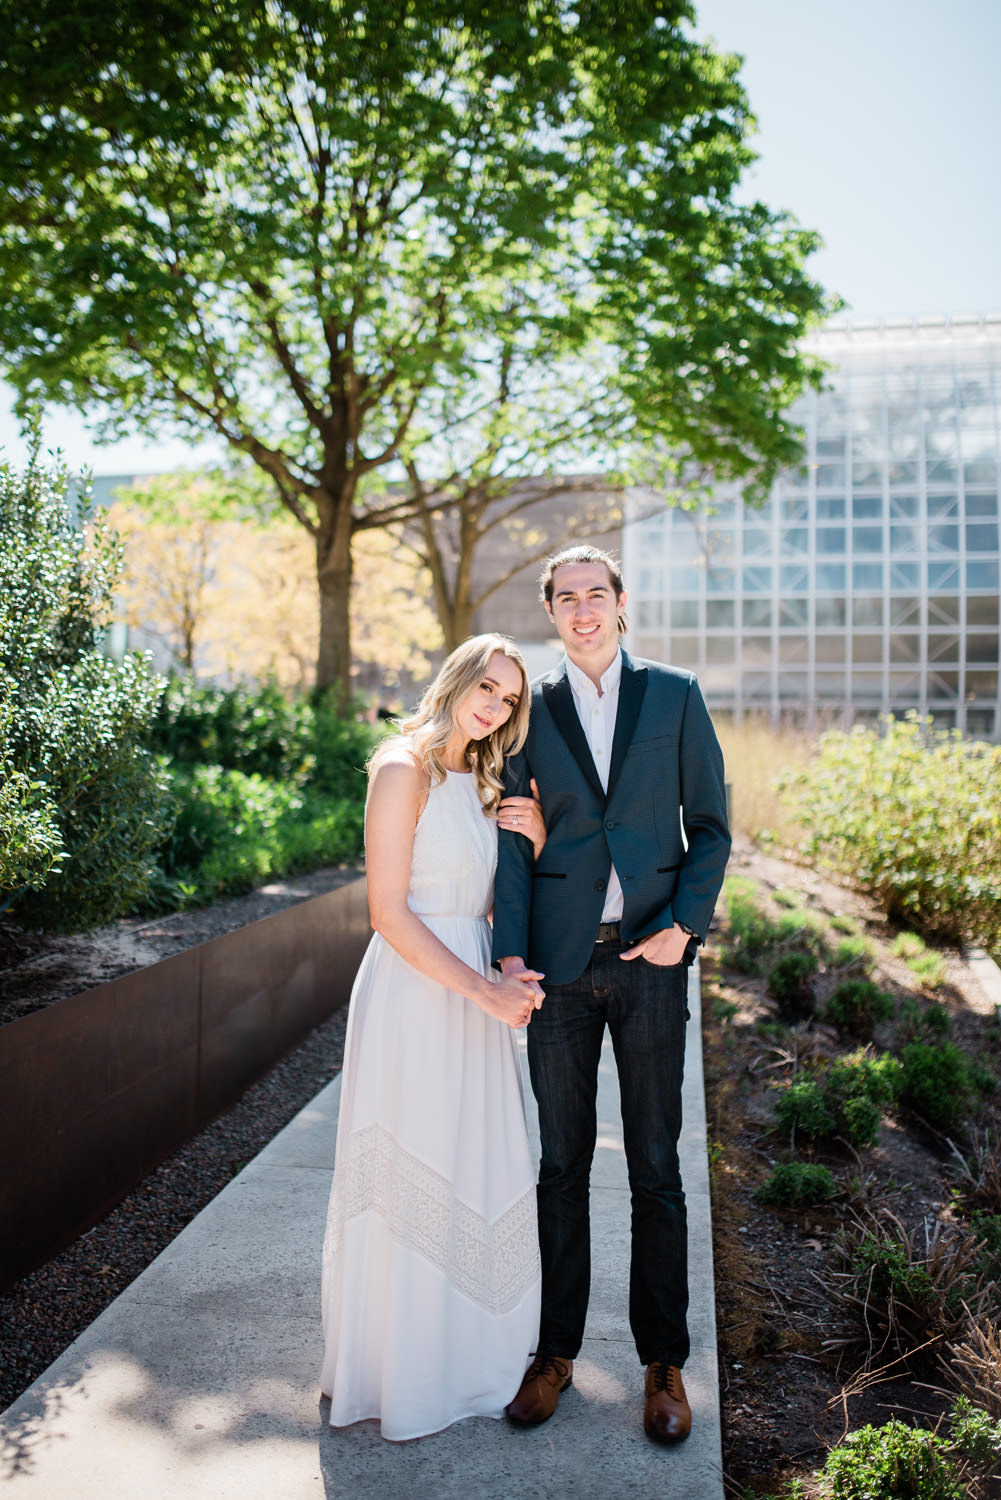 website —Engaged - Aaron and Leah - Emily Burney - 012